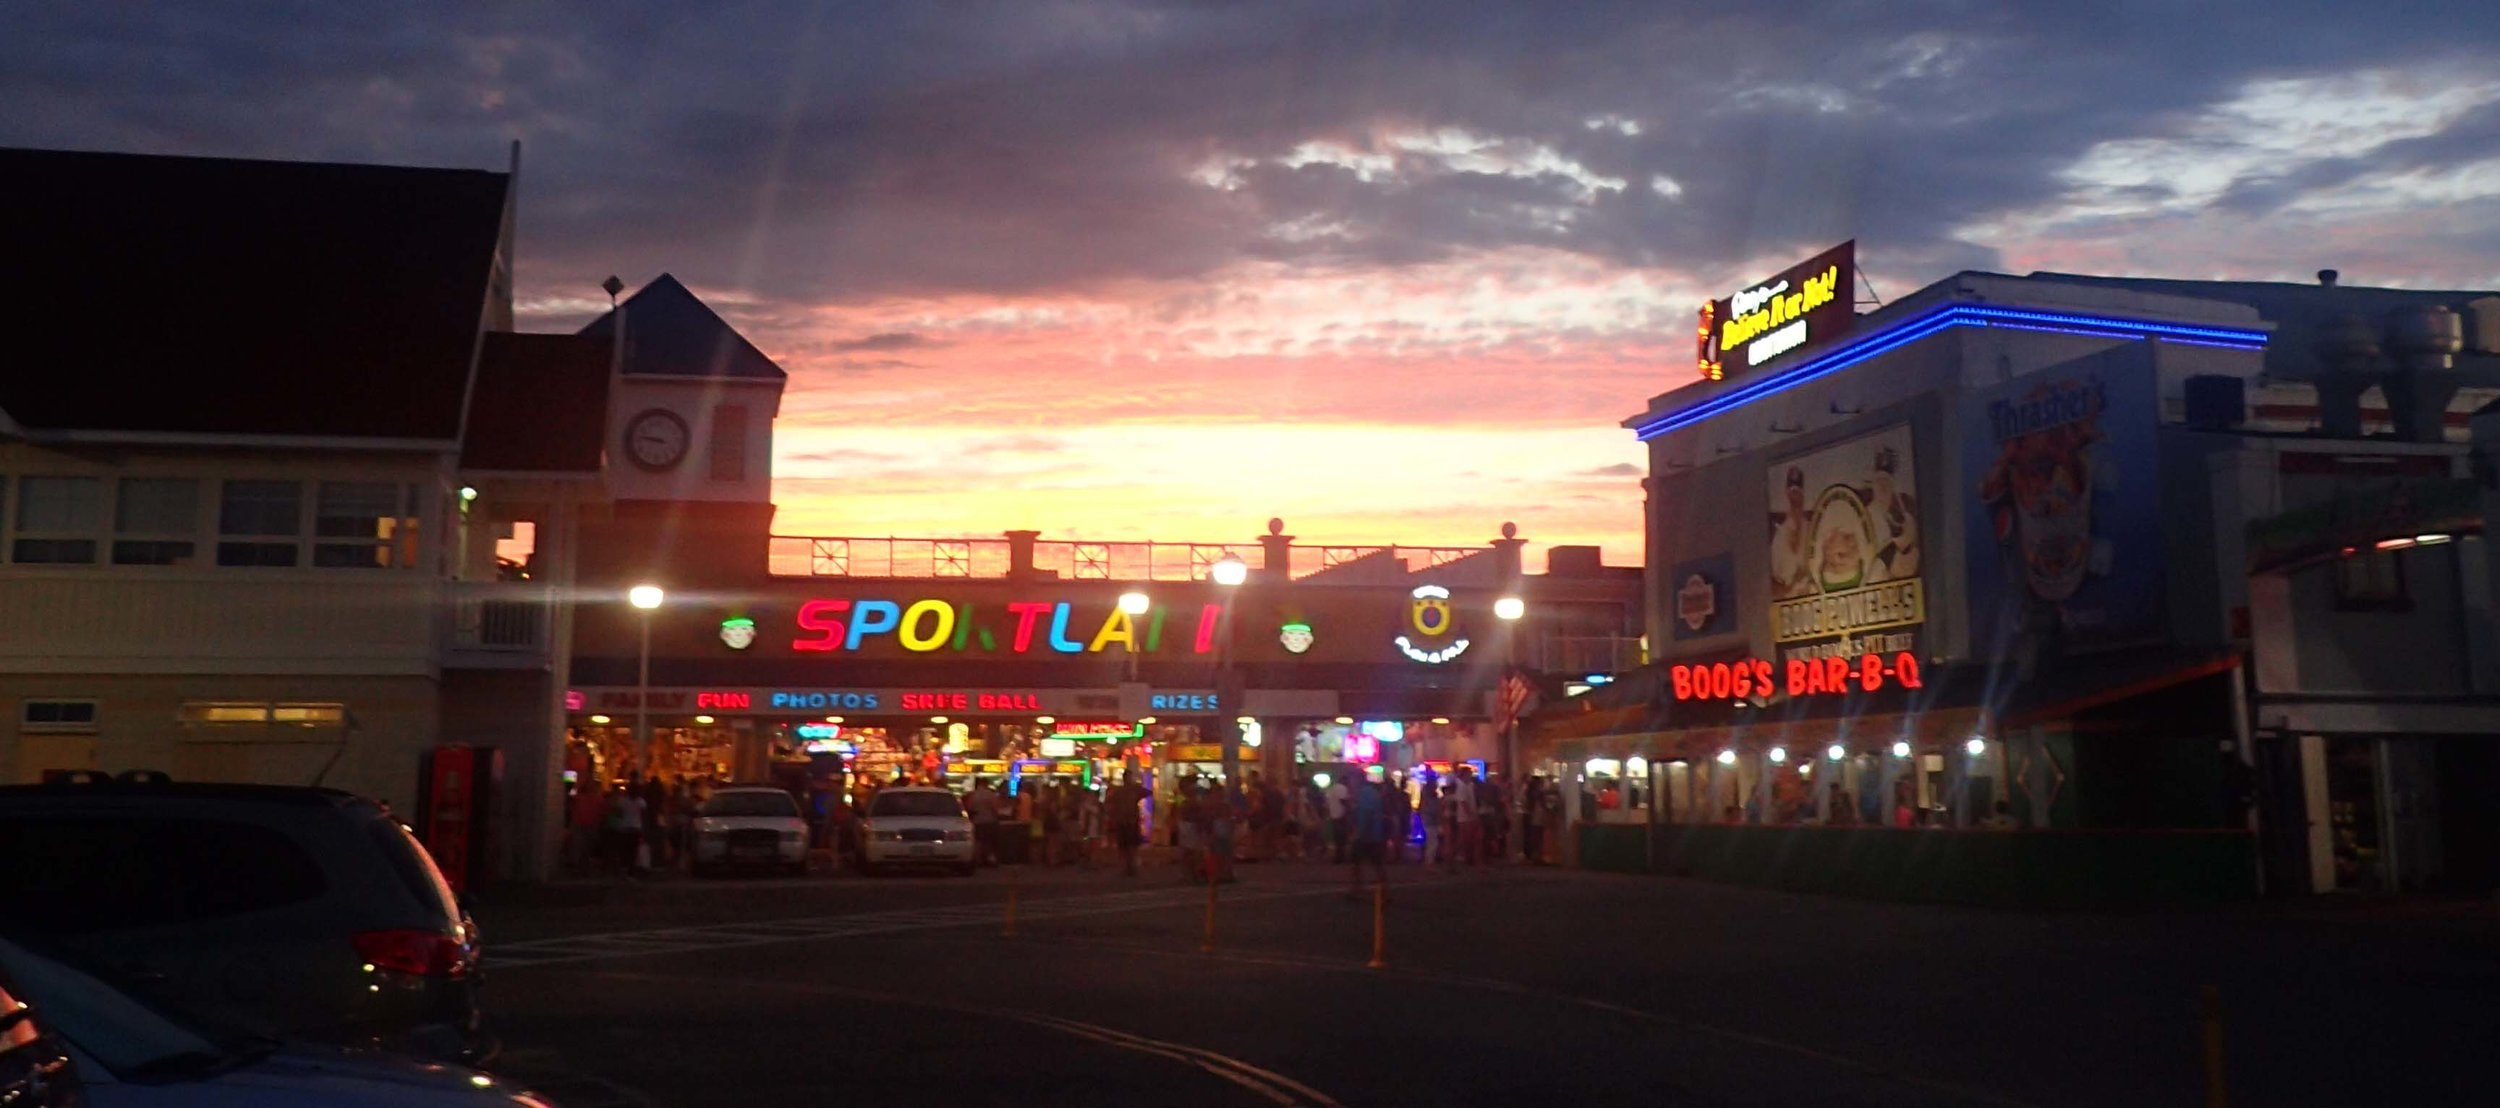 Ocean City boardwalk sunset.jpg